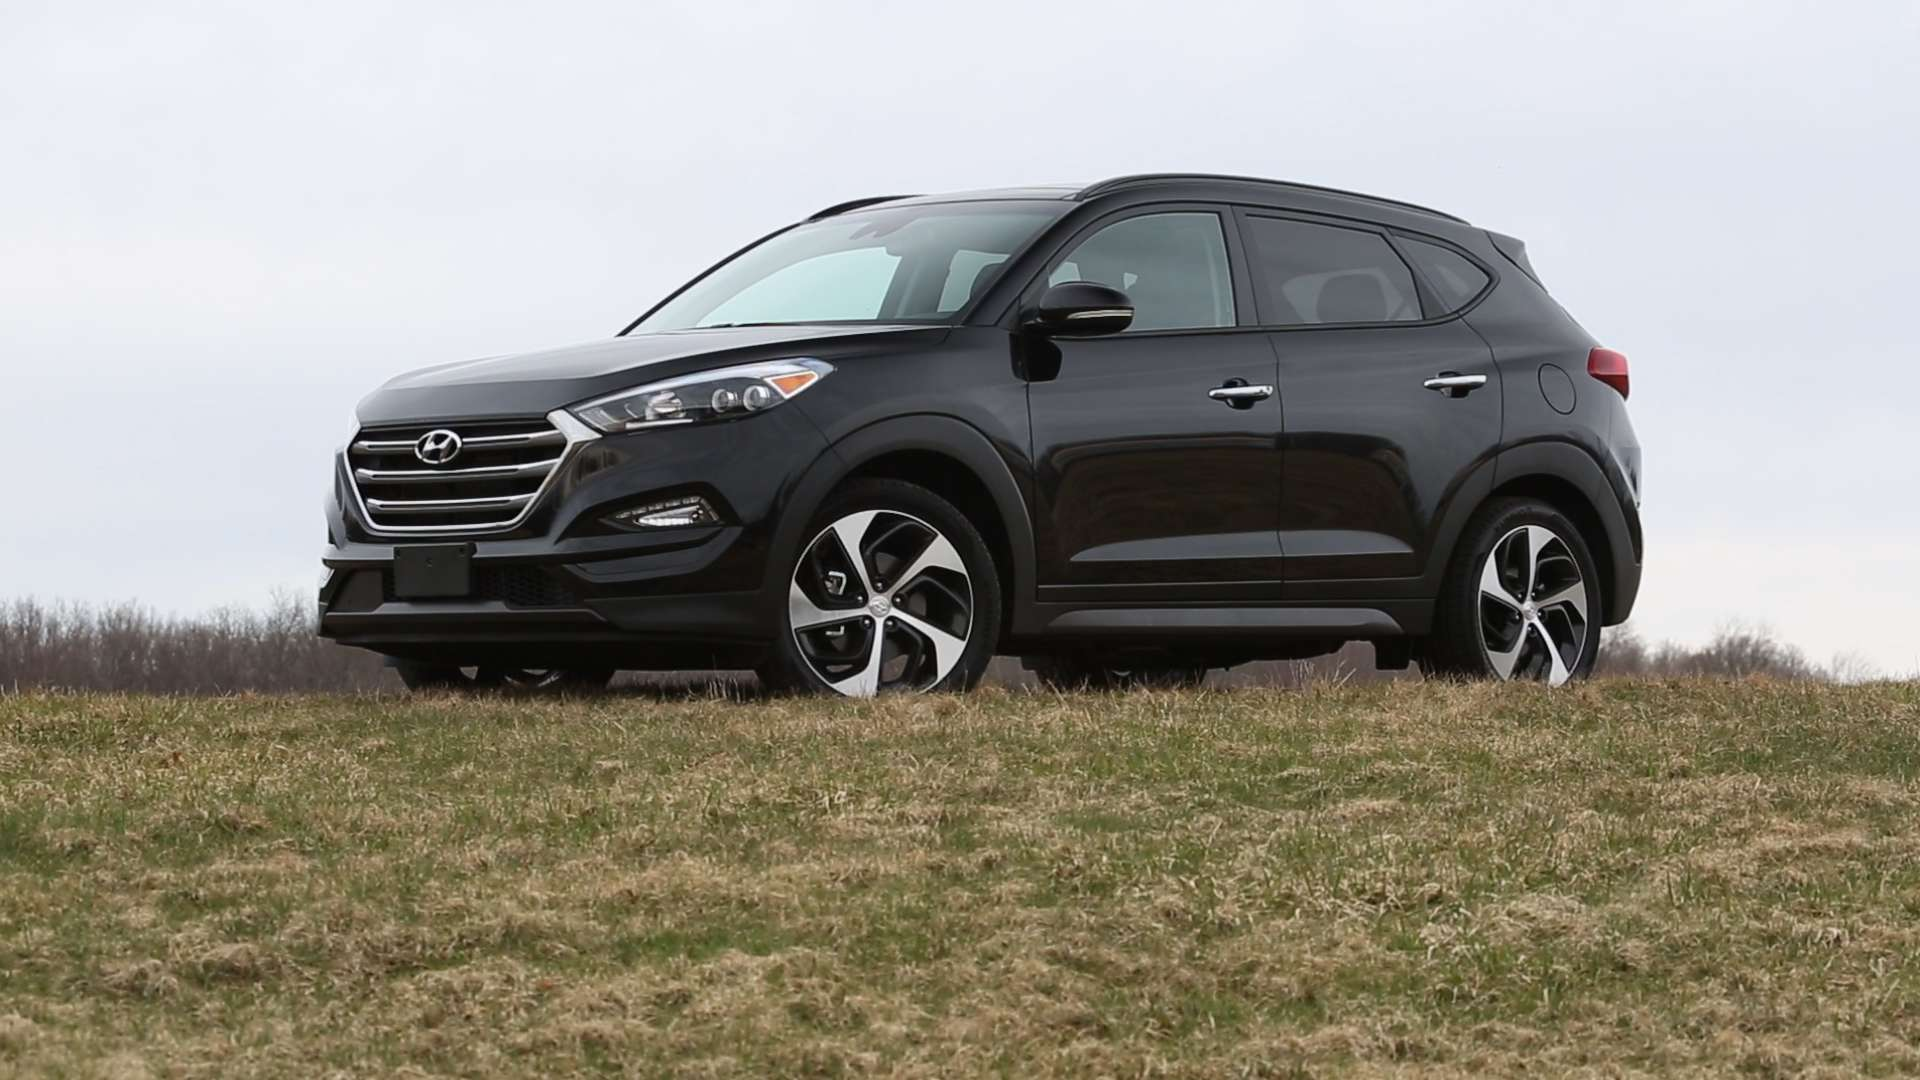 The 2016 Hyundai Tucson and the 2016 Kia Optima are excellent examples of improved vehicle performance and mass reduction through using AHSS